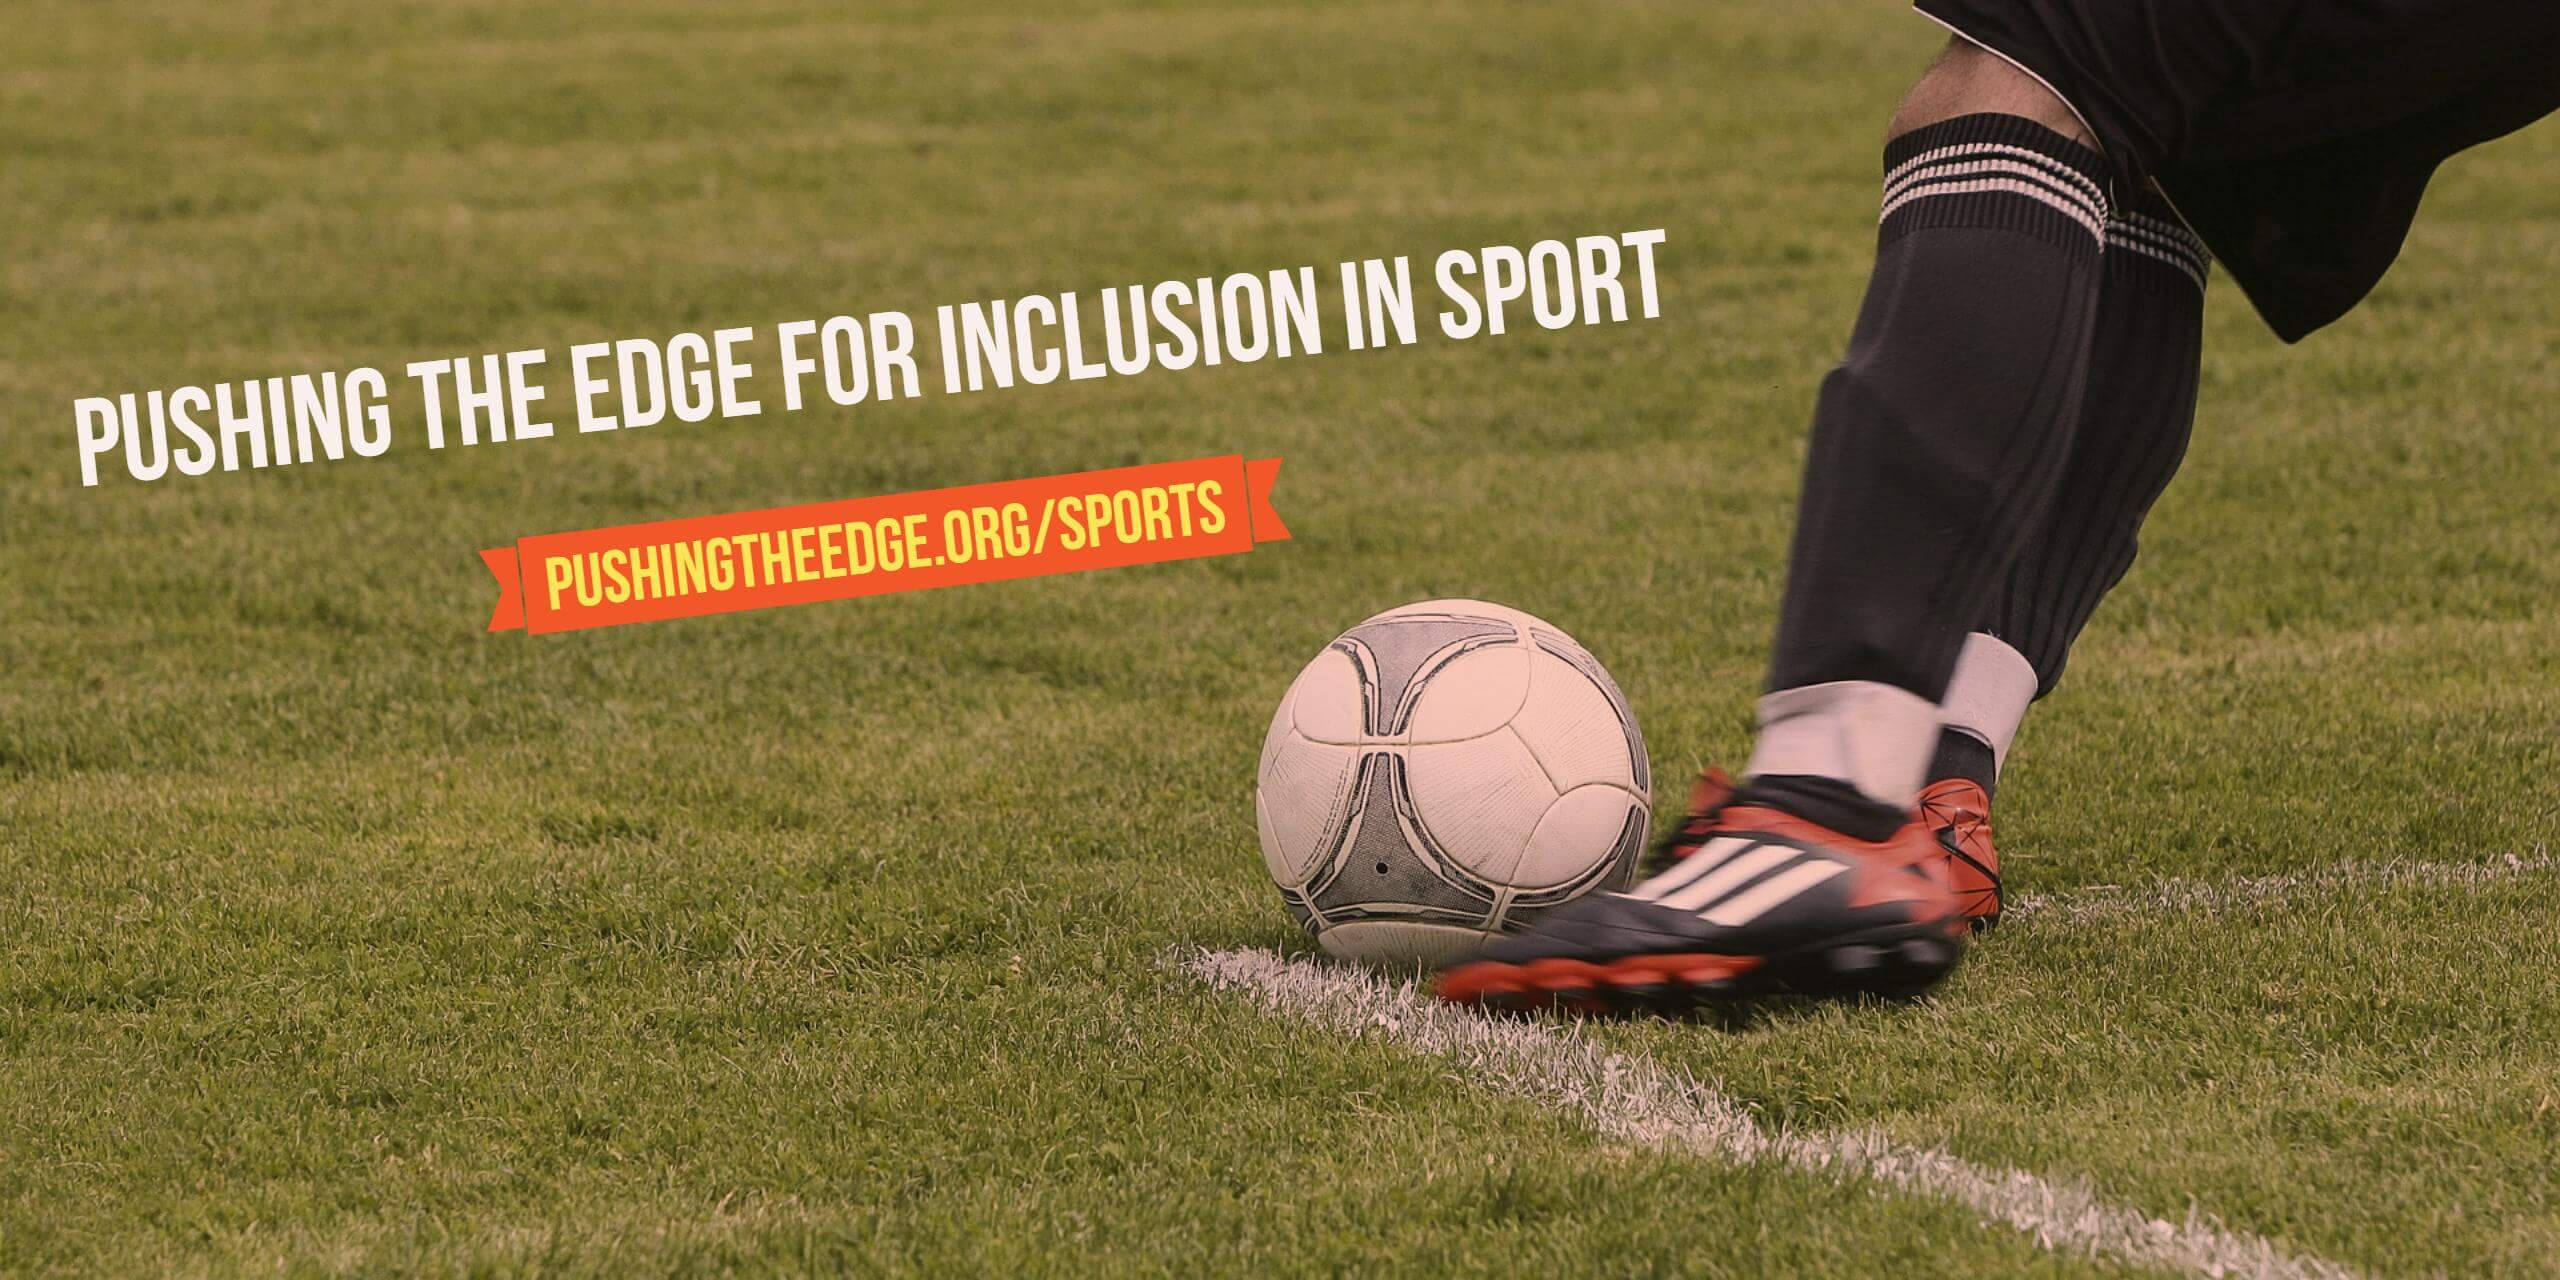 Pushing The Edge for Inclusion in Sport